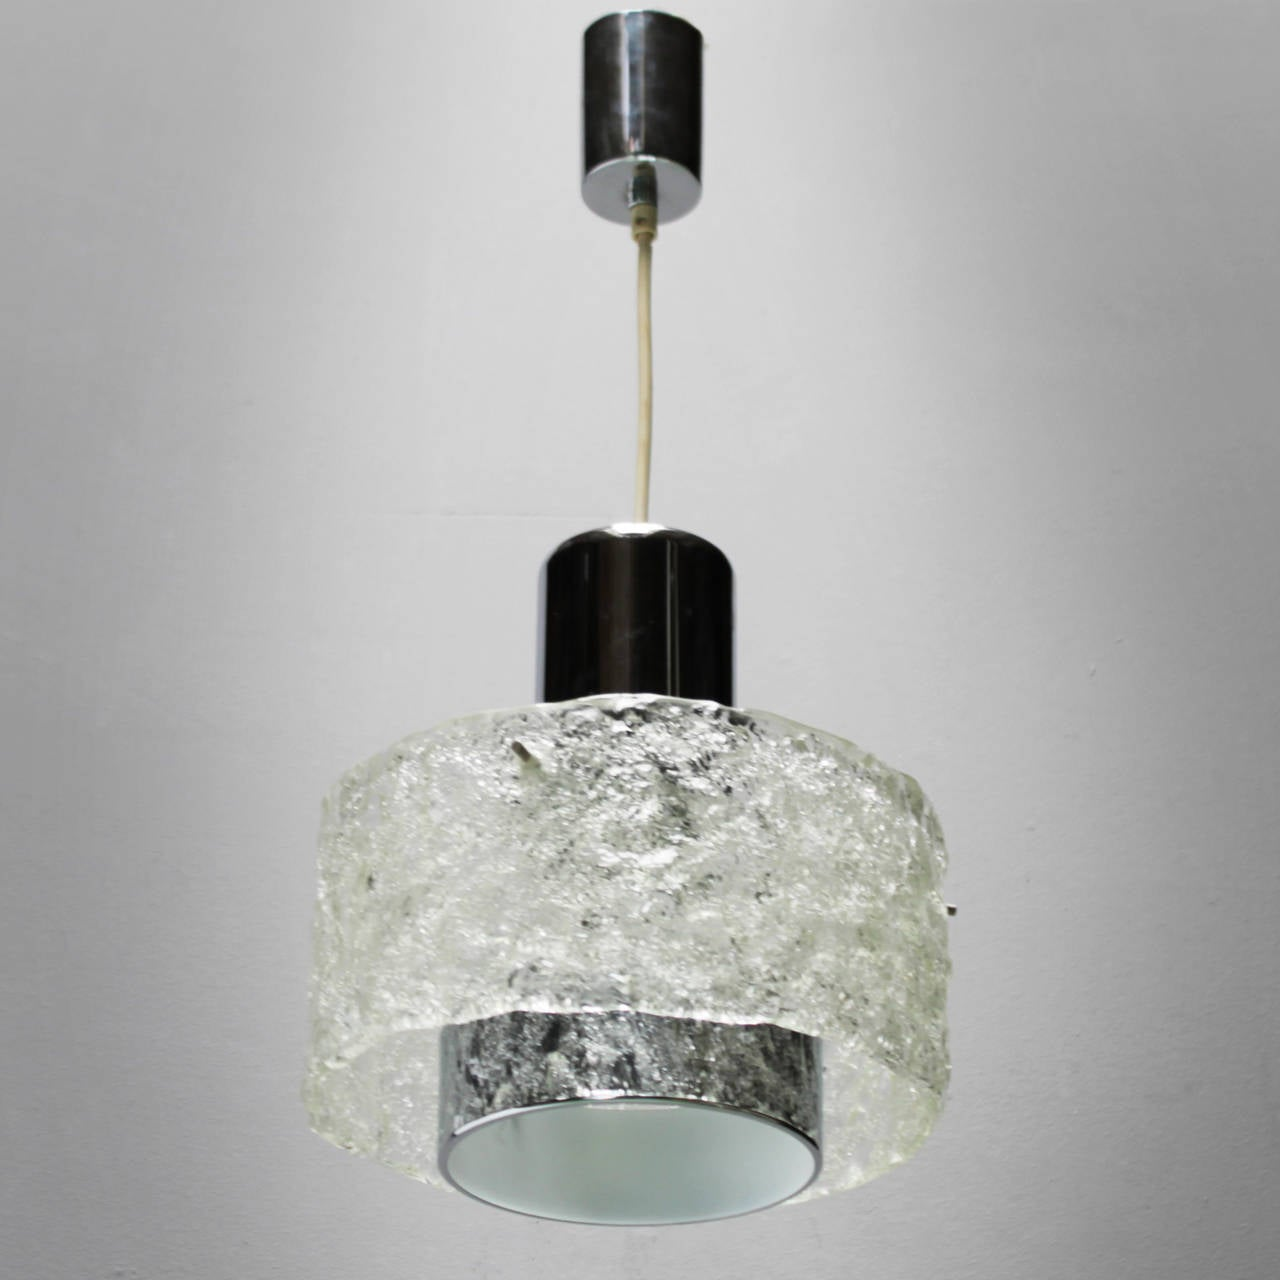 Mid-20th Century Pendant in the style of Kalmar Lighting For Sale